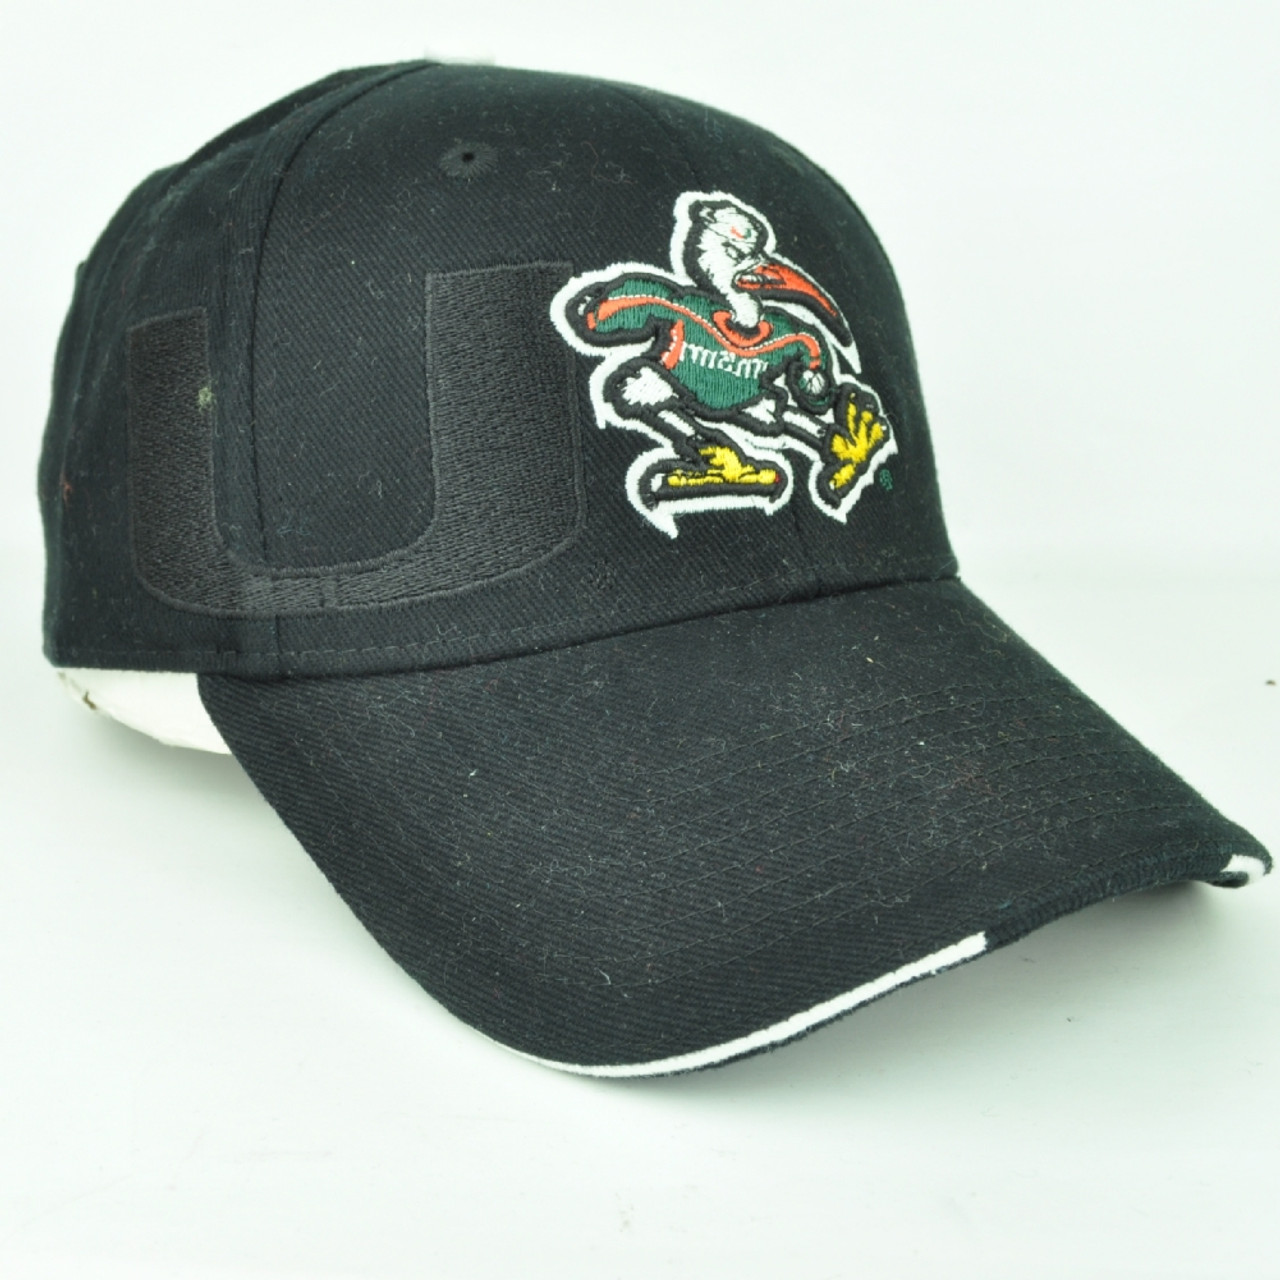 best service 386dd c9a6e ... italy ncaa miami hurricanes black white adjustable hat cap curved bill  100 cotton 34f77 adb04